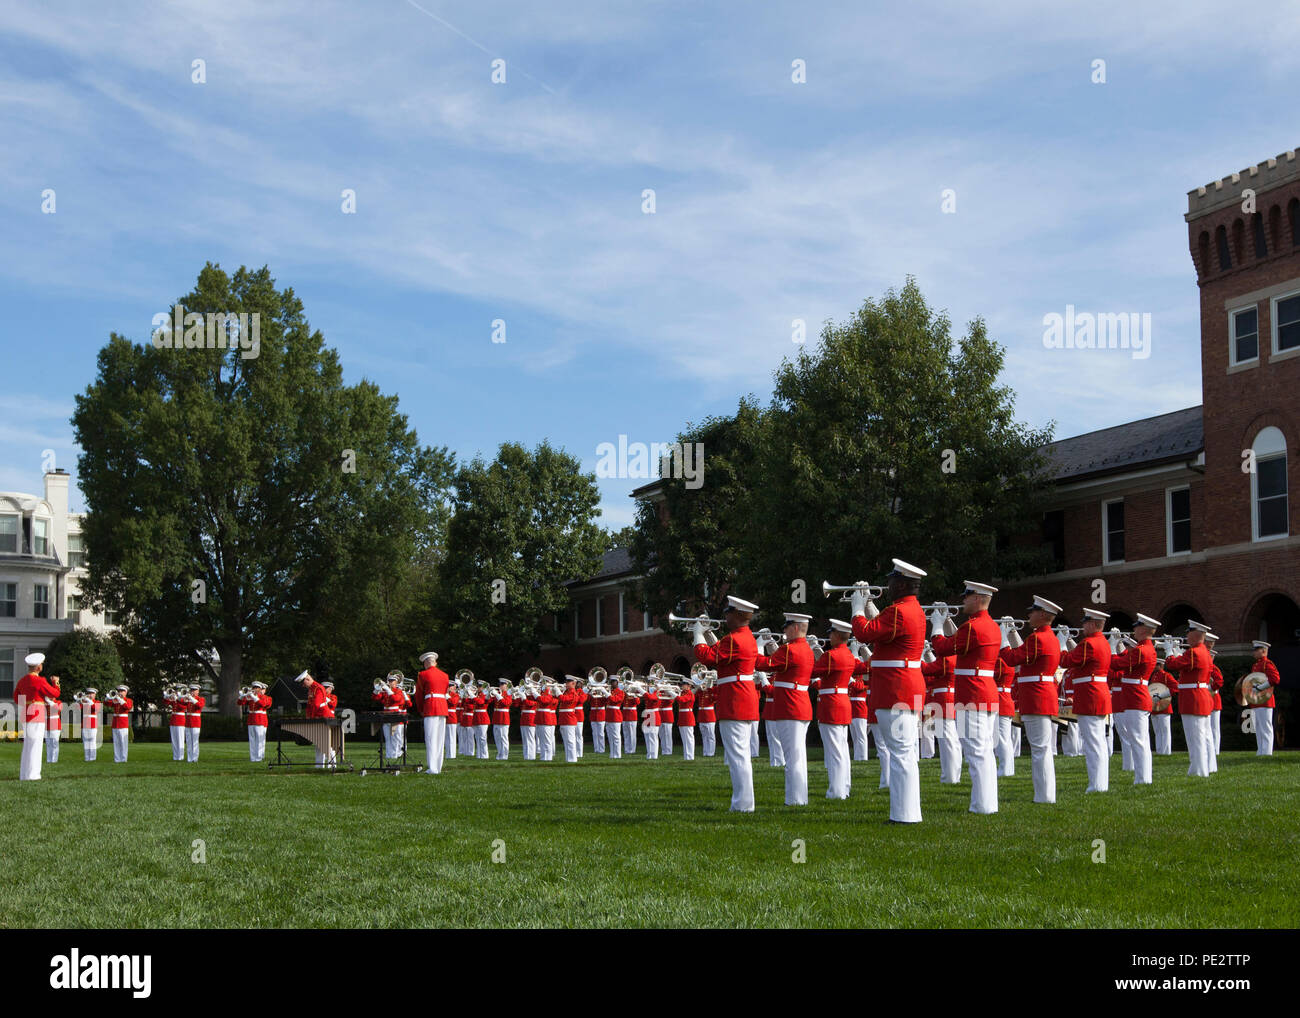 The U.S. Marine Corps Drum and Bugle Corps perform during a Passage of Command ceremony at Marine Barracks Washington, D.C., Sept. 24, 2015. Gen. Robert B. Neller took command from Gen. Joseph F. Dunford Jr. as the 37th Commandant of the Marine Corps. (U.S. Marine Corps photo by Lance Cpl. Christopher J. Nunn/Released) Stock Photo